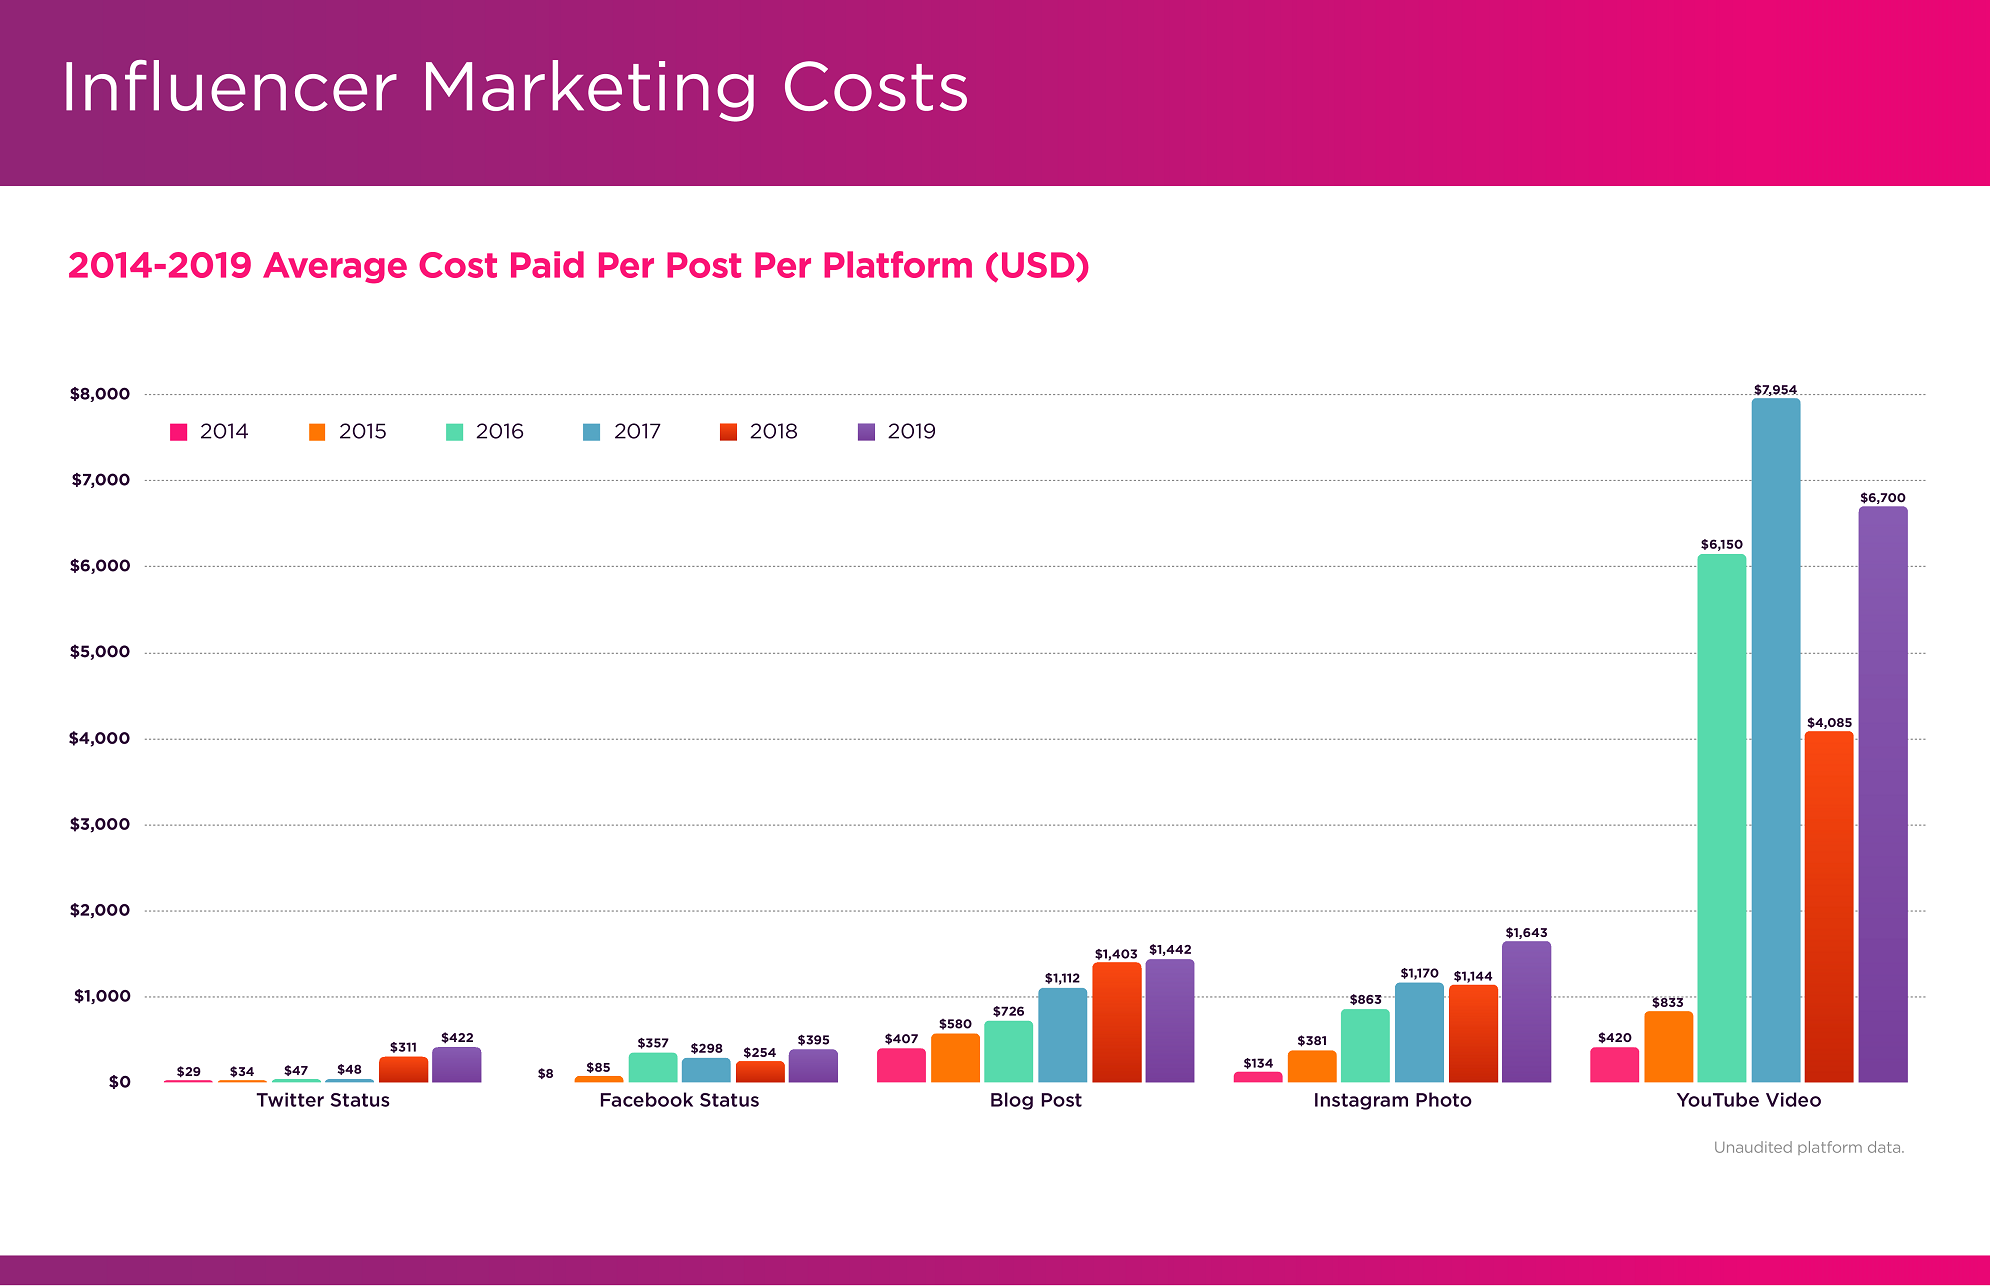 Influencer Marketing Trends The Cost of Sponsored Post on